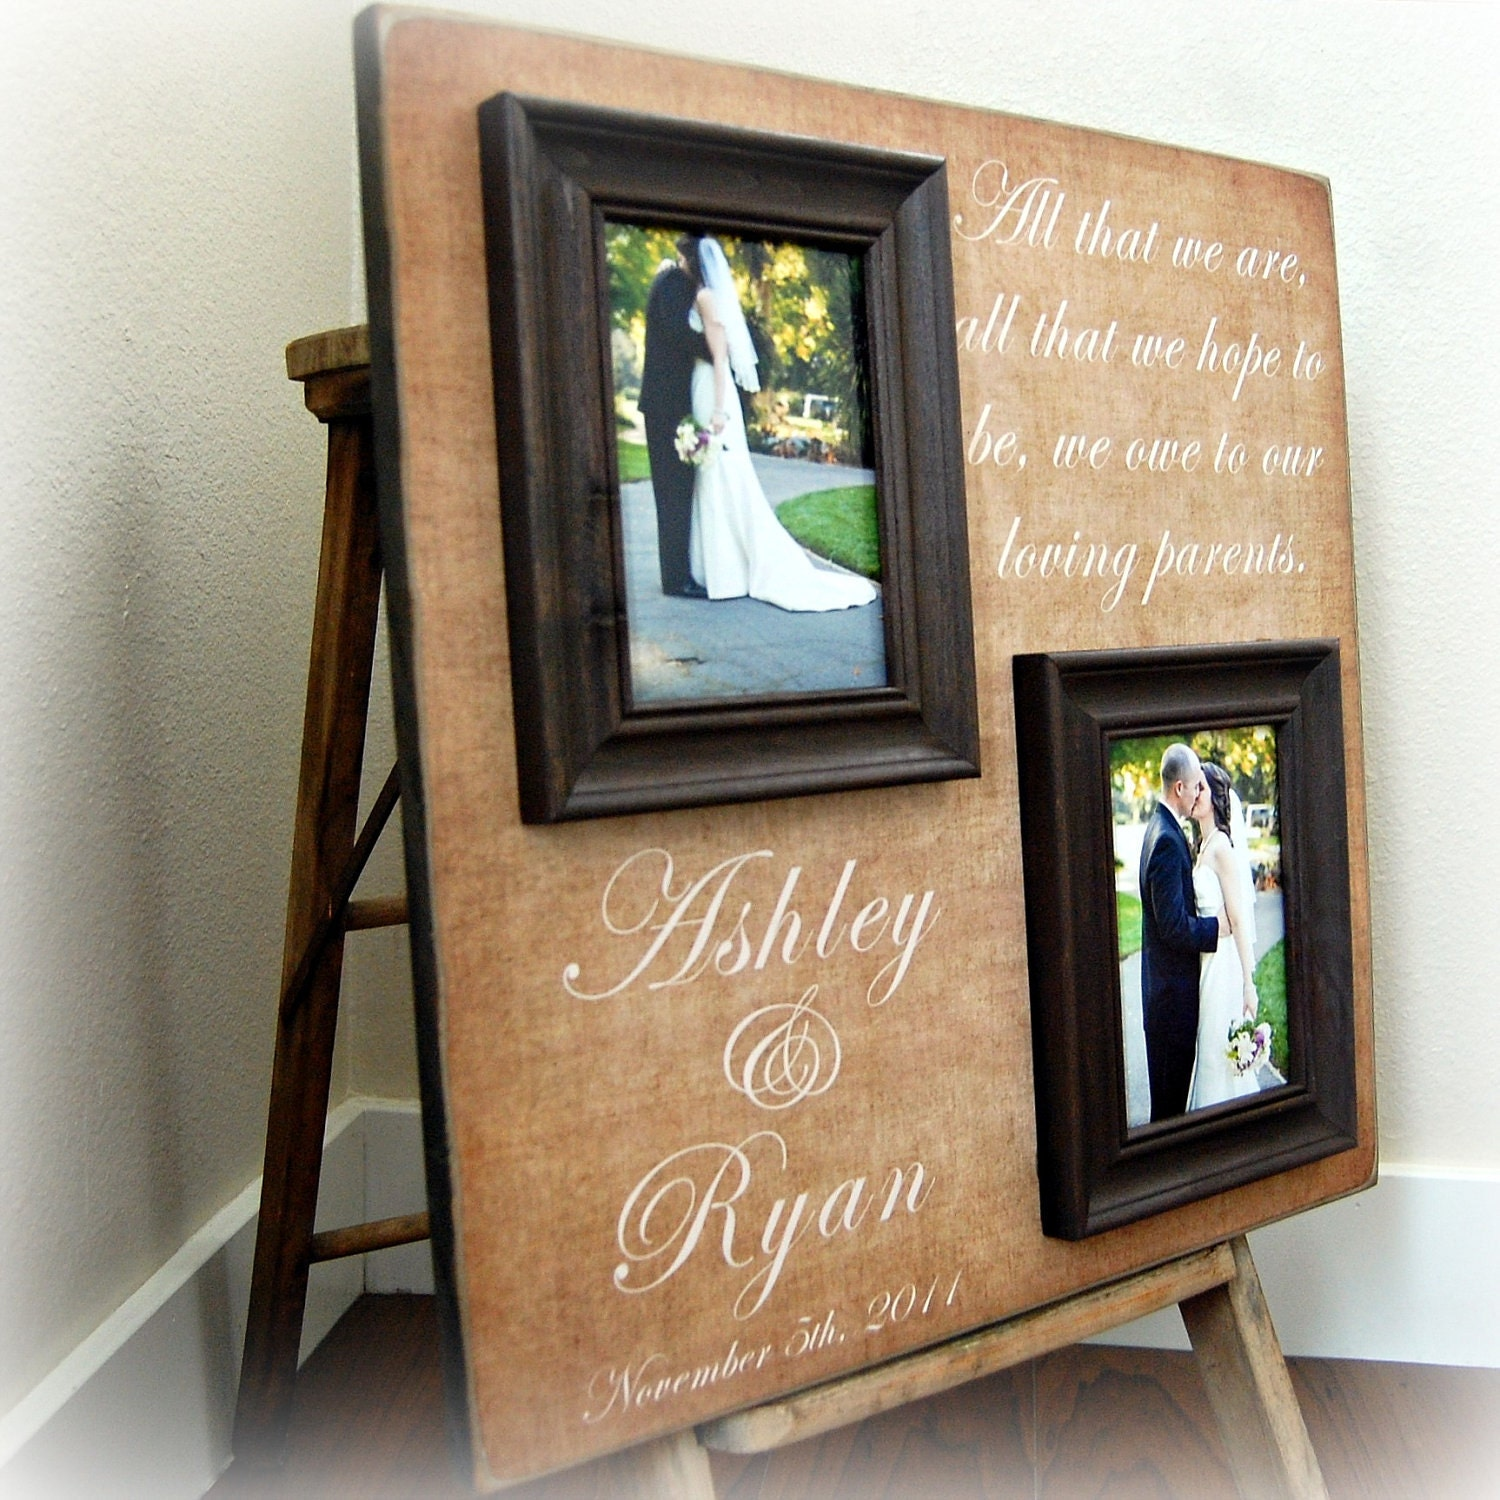 Wedding Gift Picture: Personalized Picture Frame Wedding Gift Custom 20x20 All THAT